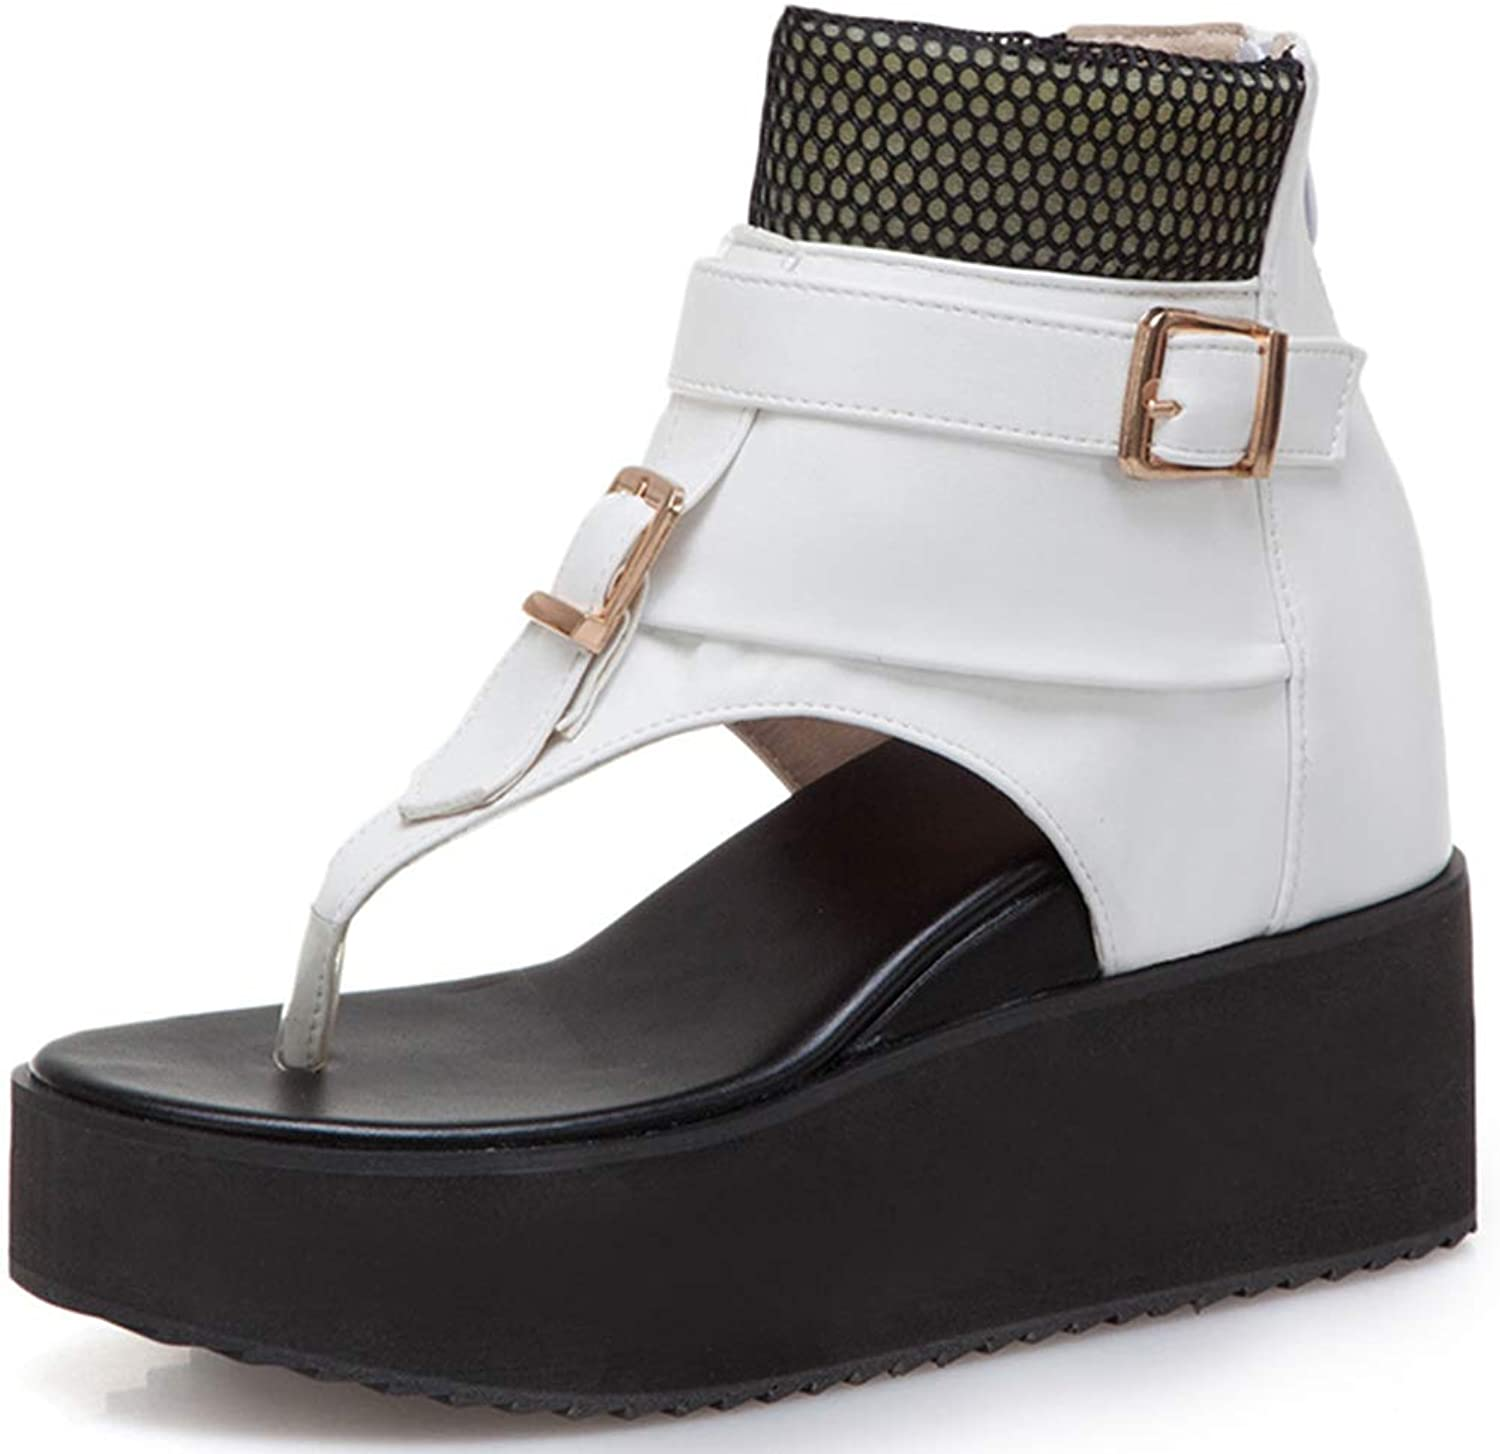 Vimisaoi Summer Rome Wedges Chunky Platform Sandals for Women, Soft Footbed Flip Flops Thongs Slip On Ankle Strap Casual shoes